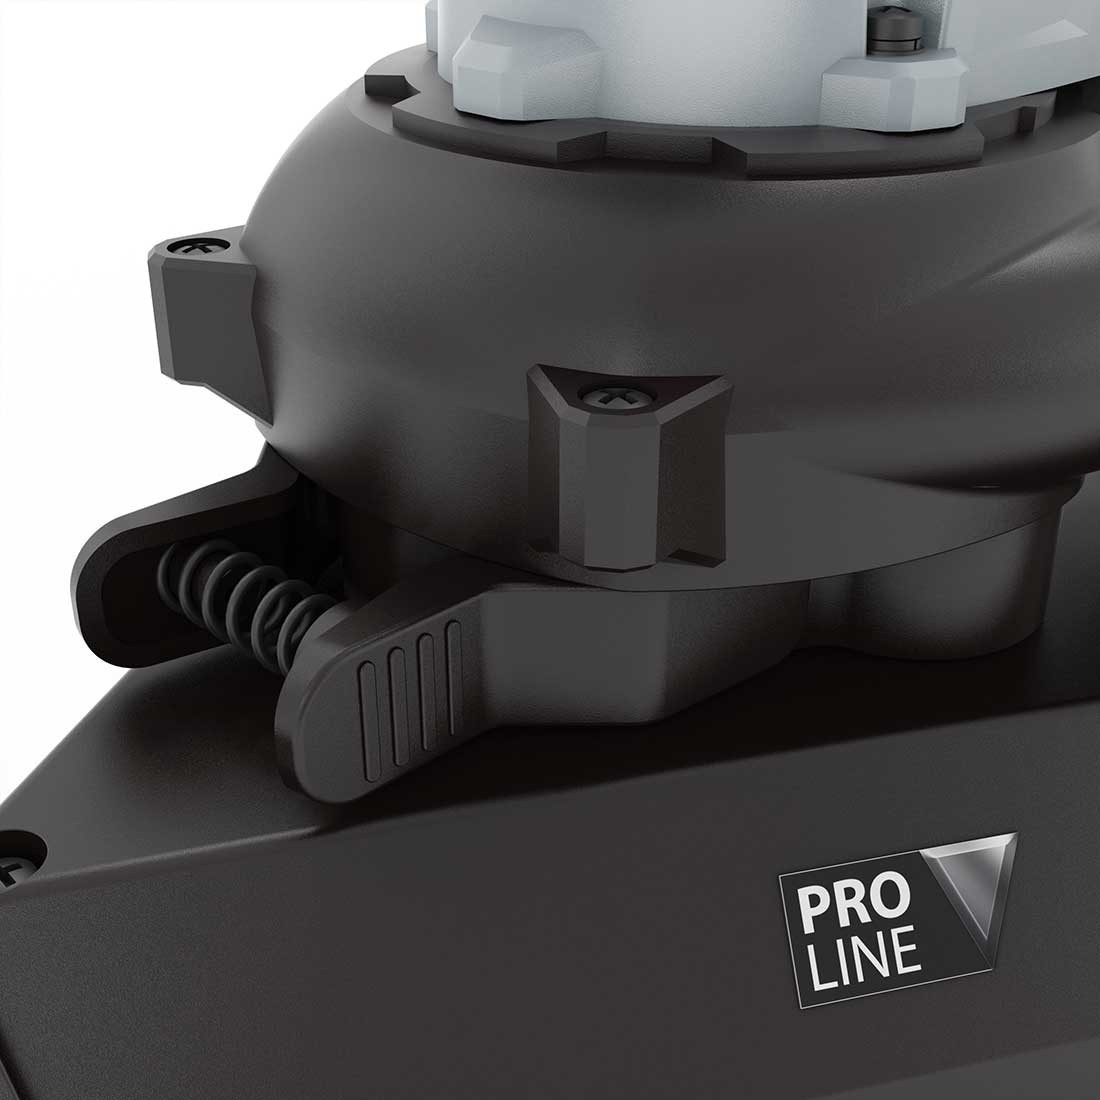 MENZER TSW 225 PRO replaceable head system